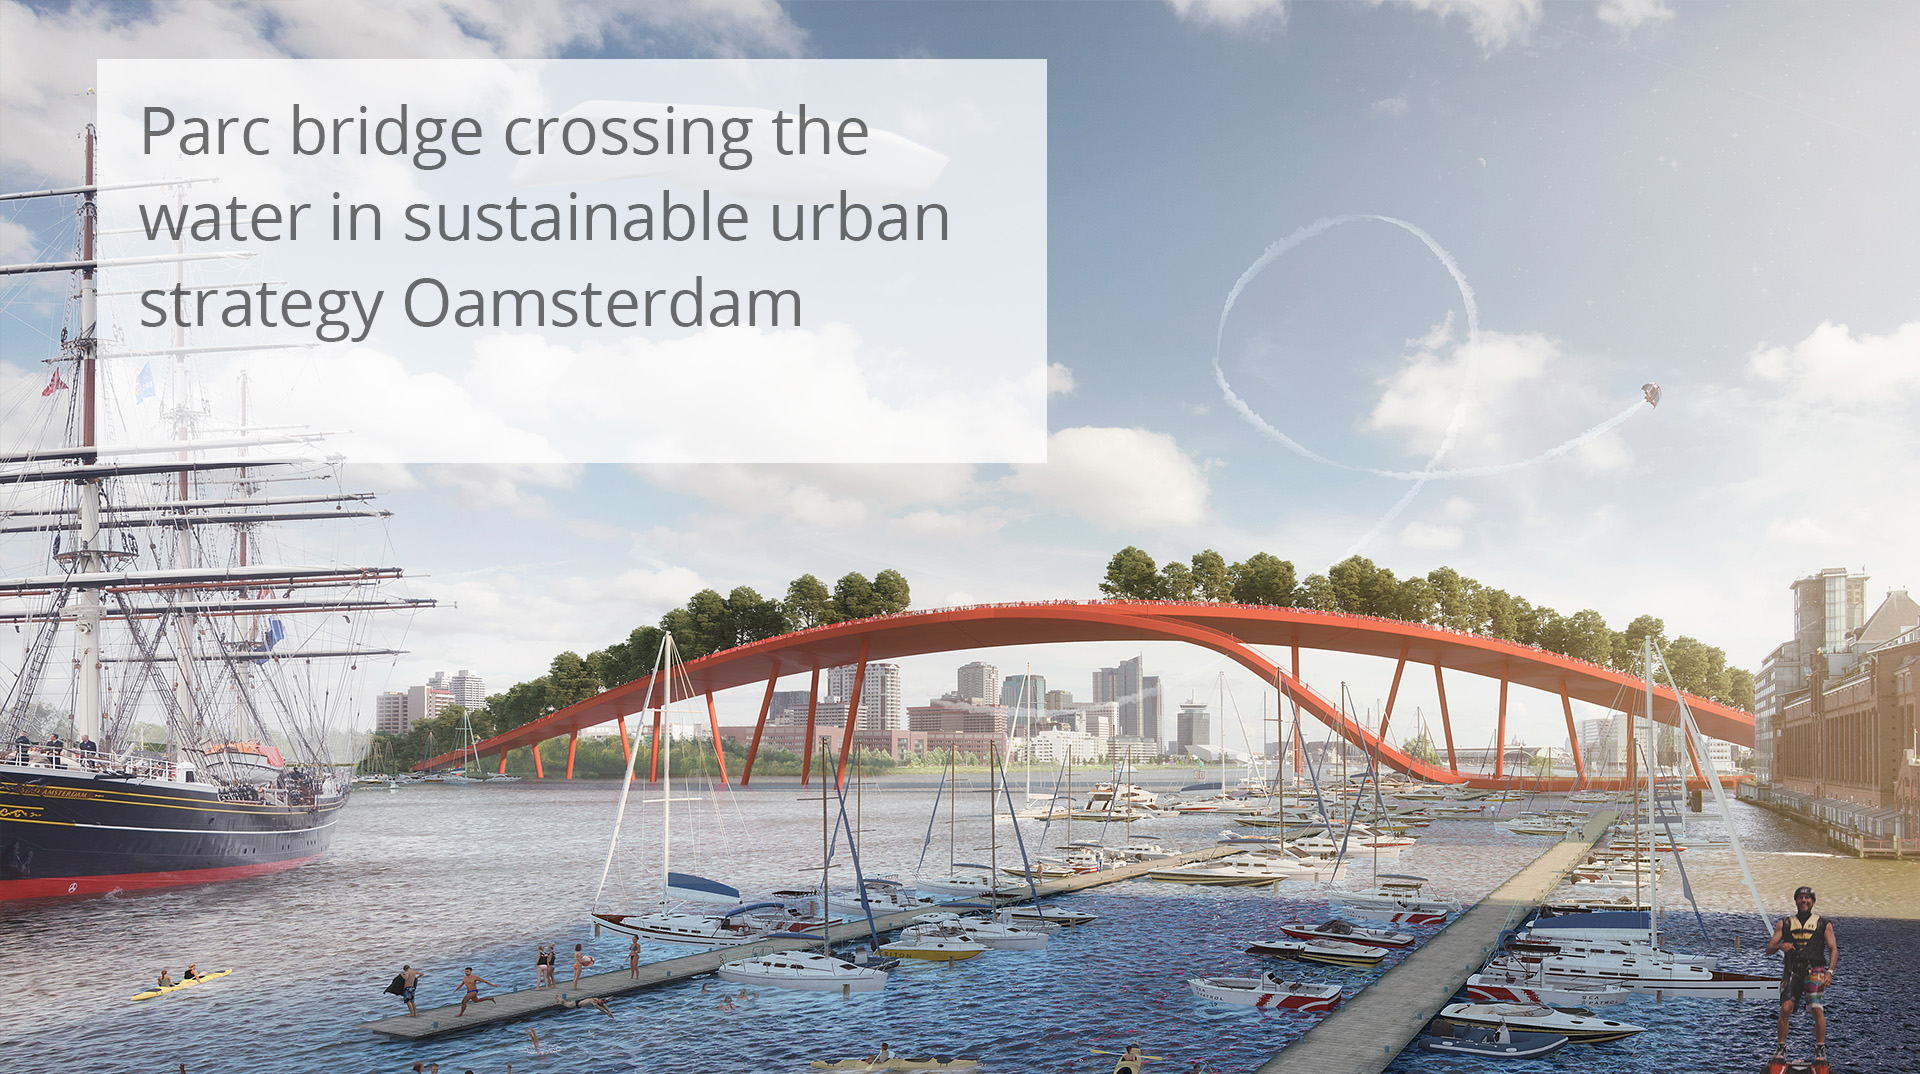 Oamsterdam sustainable urban strategy